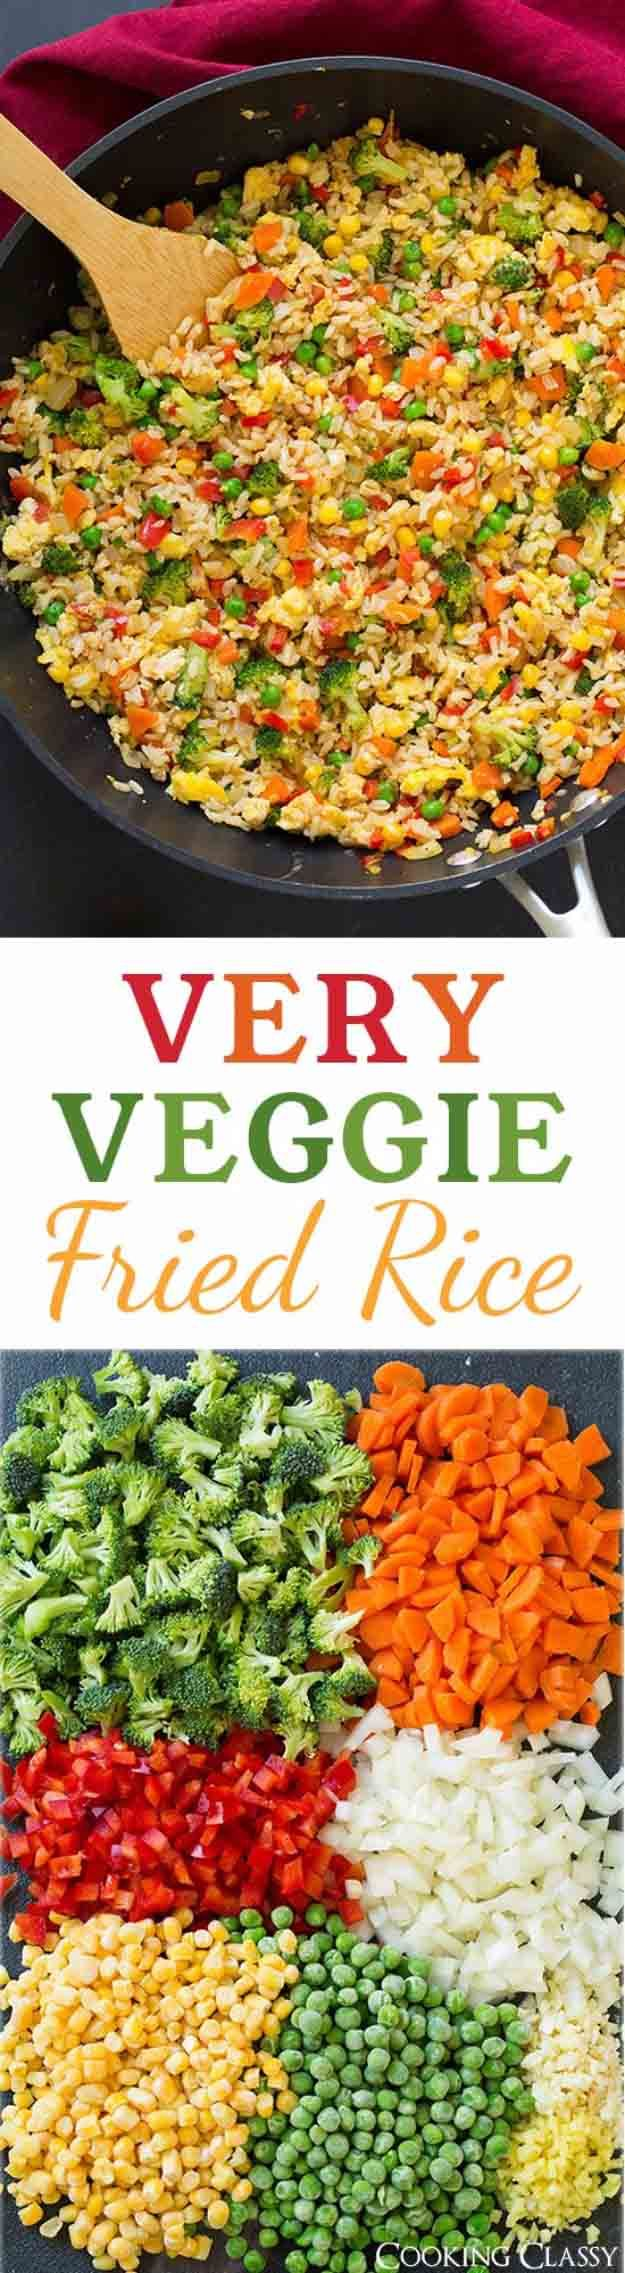 Quick and Easy Healthy Dinner Recipes - Very Veggie Fried Rice- Awesome Recipes For Weight Loss - Great Receipes For One, For Two or For Family Gatherings - Quick Recipes for When You're On A Budget - Chicken and Zucchini Dishes Under 500 Calories - Quick Low Carb Dinners With Beef or Shrimp or Even Vegetarian - Amazing Dishes For Picky Eaters - https://thegoddess.com/easy-healthy-dinner-receipes